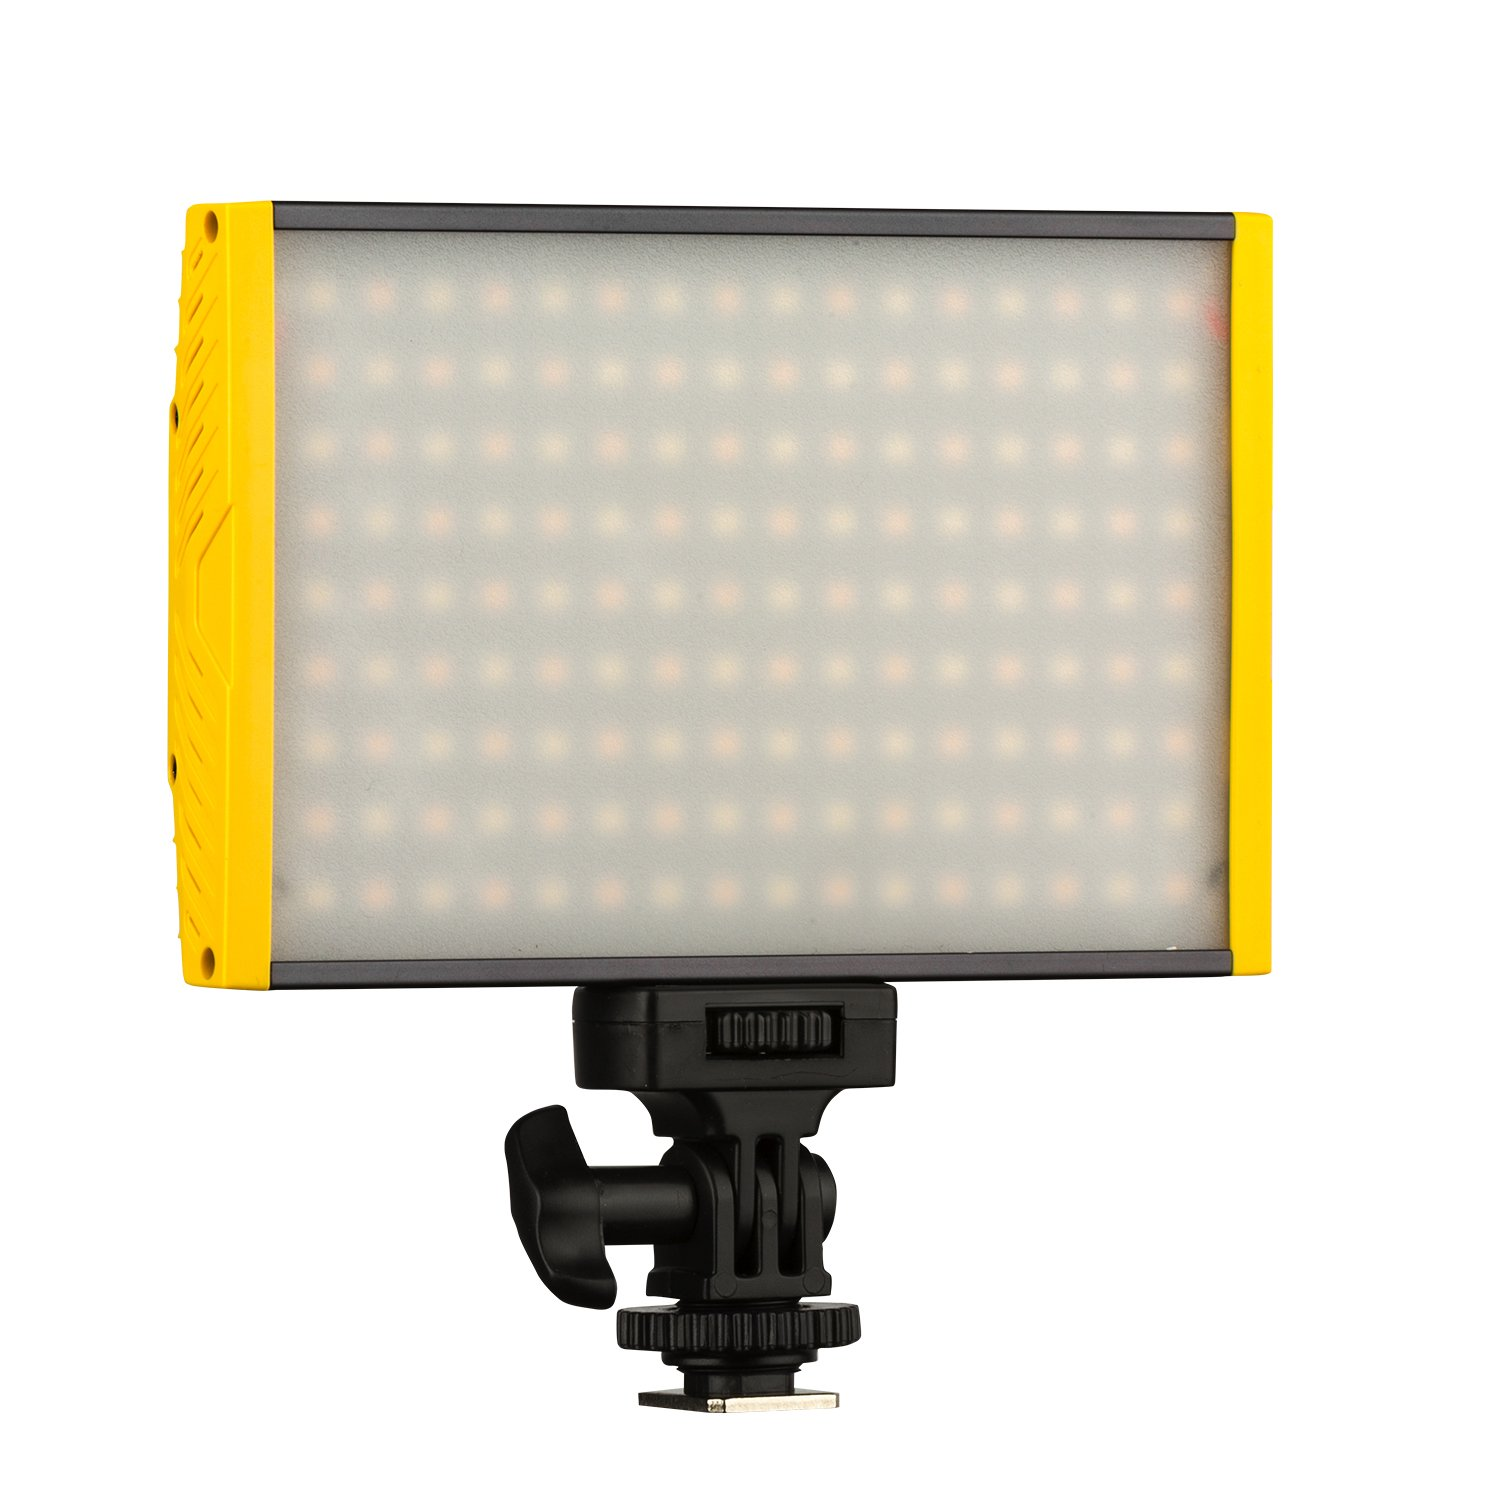 Ikan Onyx 120 Bi-Color Aluminum On Camera LED Light, Black (OYB120) by Ikan